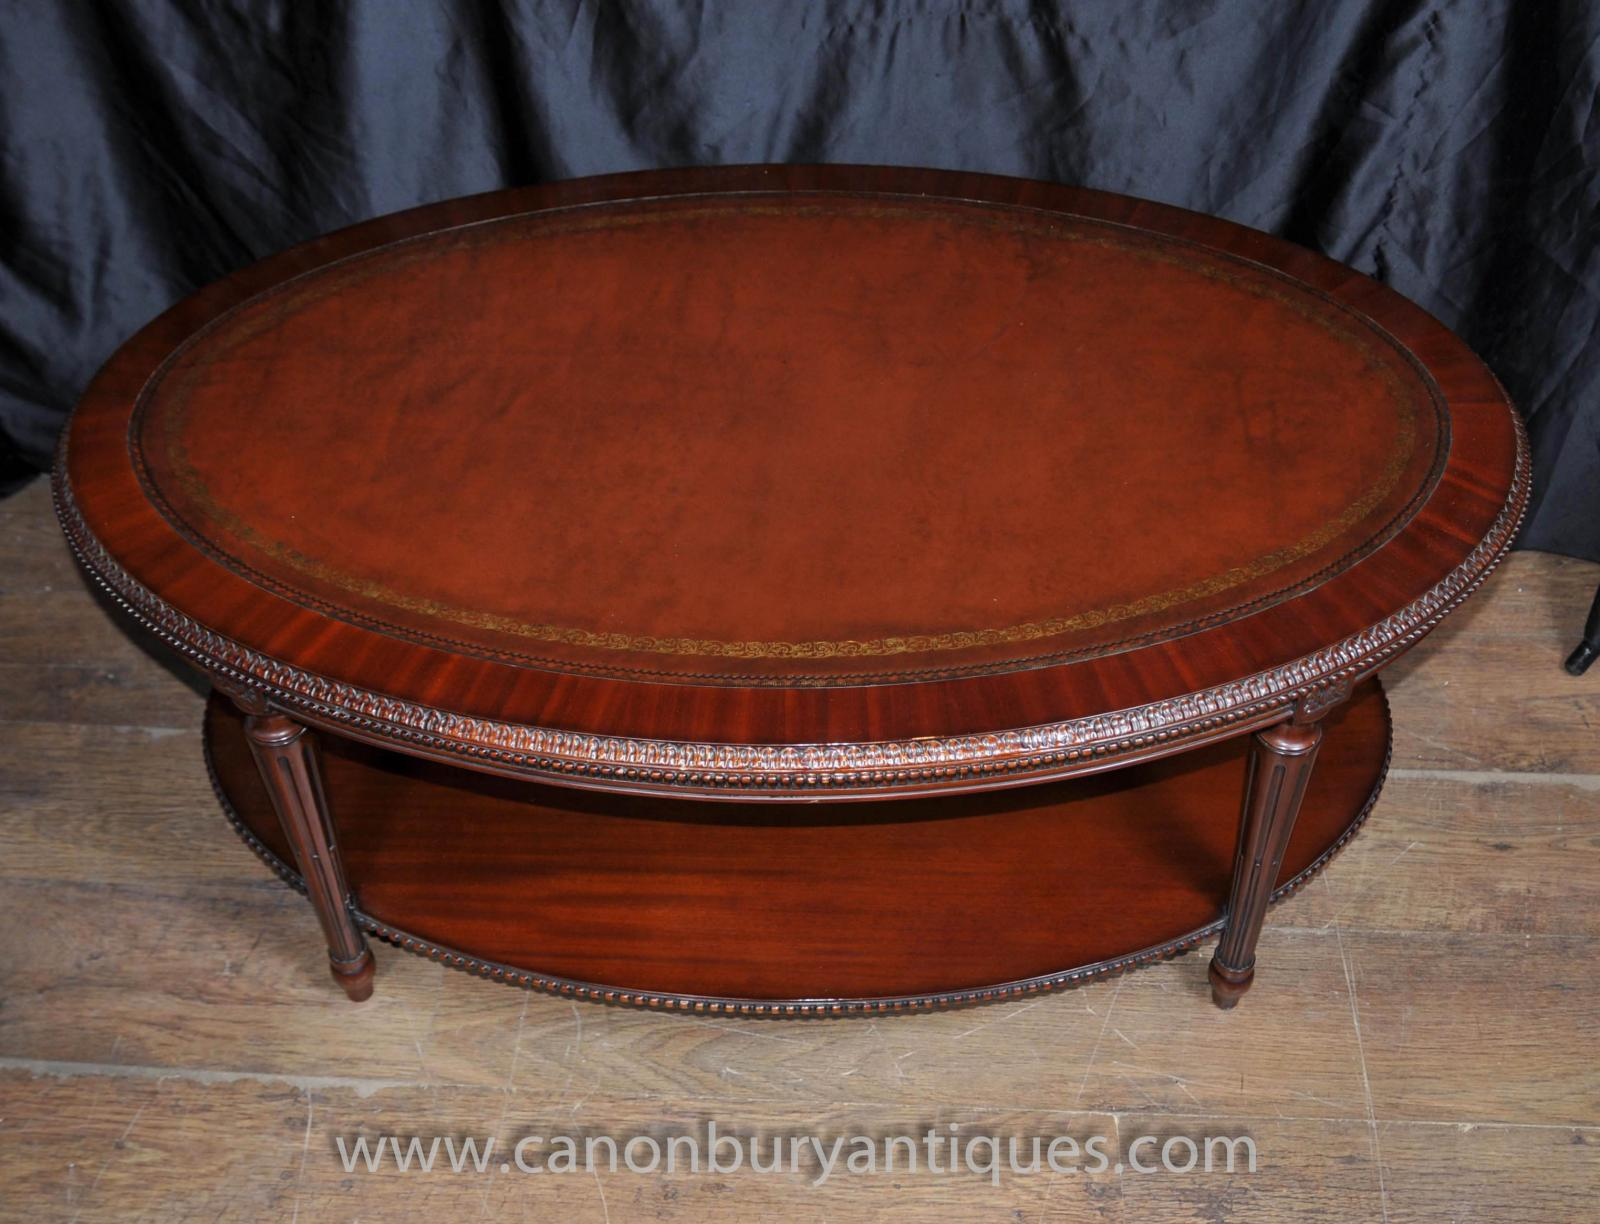 Regency oval coffee table mahogany leather top tables ebay Coffee table with leather top